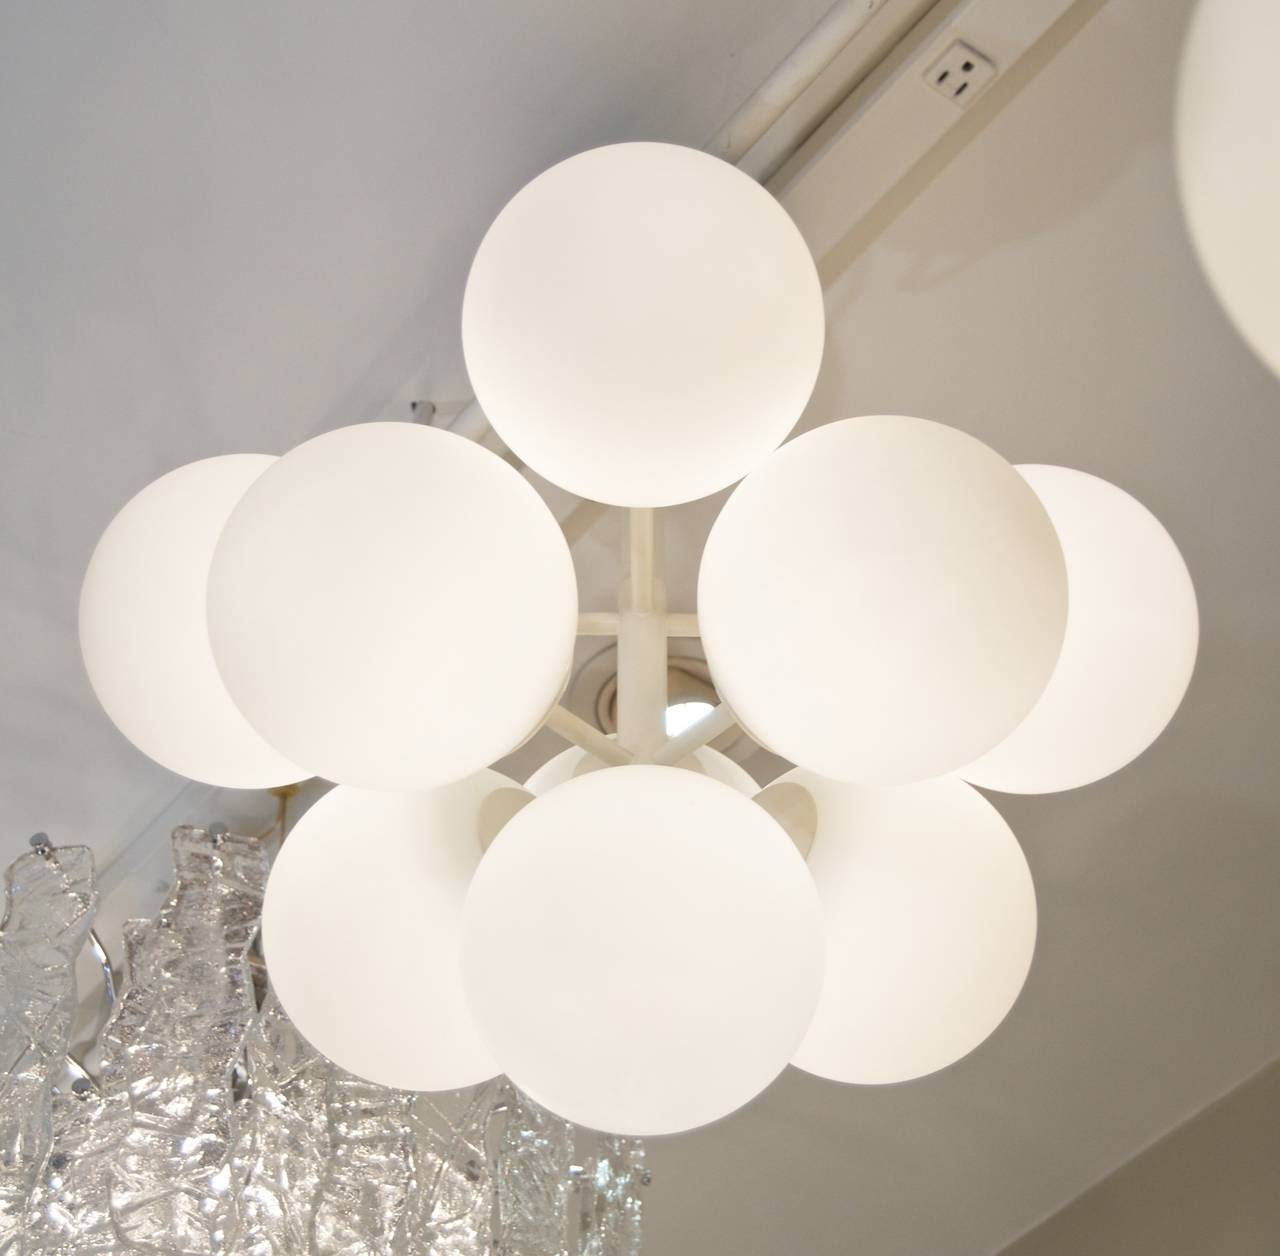 Swiss Temde Atomic Chandelier in White Enamel with Opal Globes For Sale